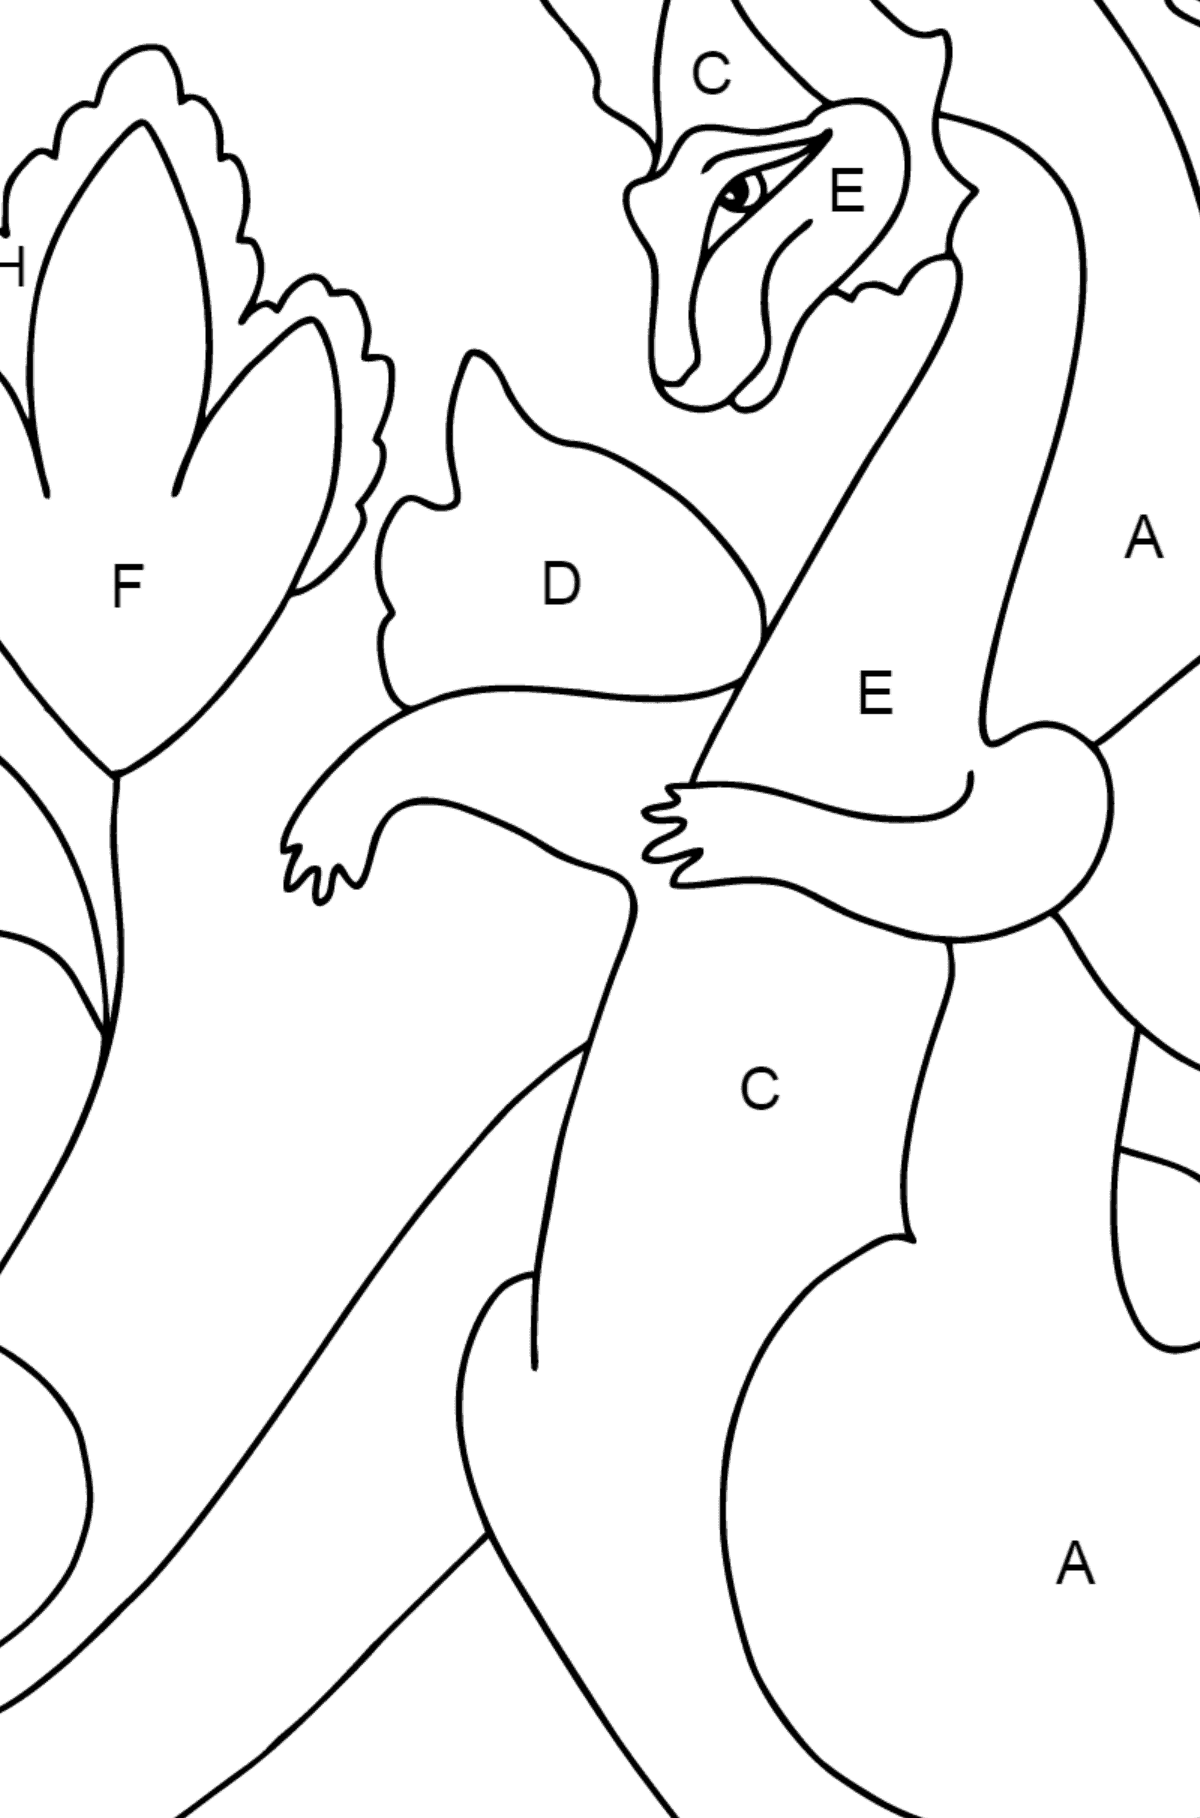 Coloring Page - A Dragon is Happy about the Find - Coloring by Letters for Children